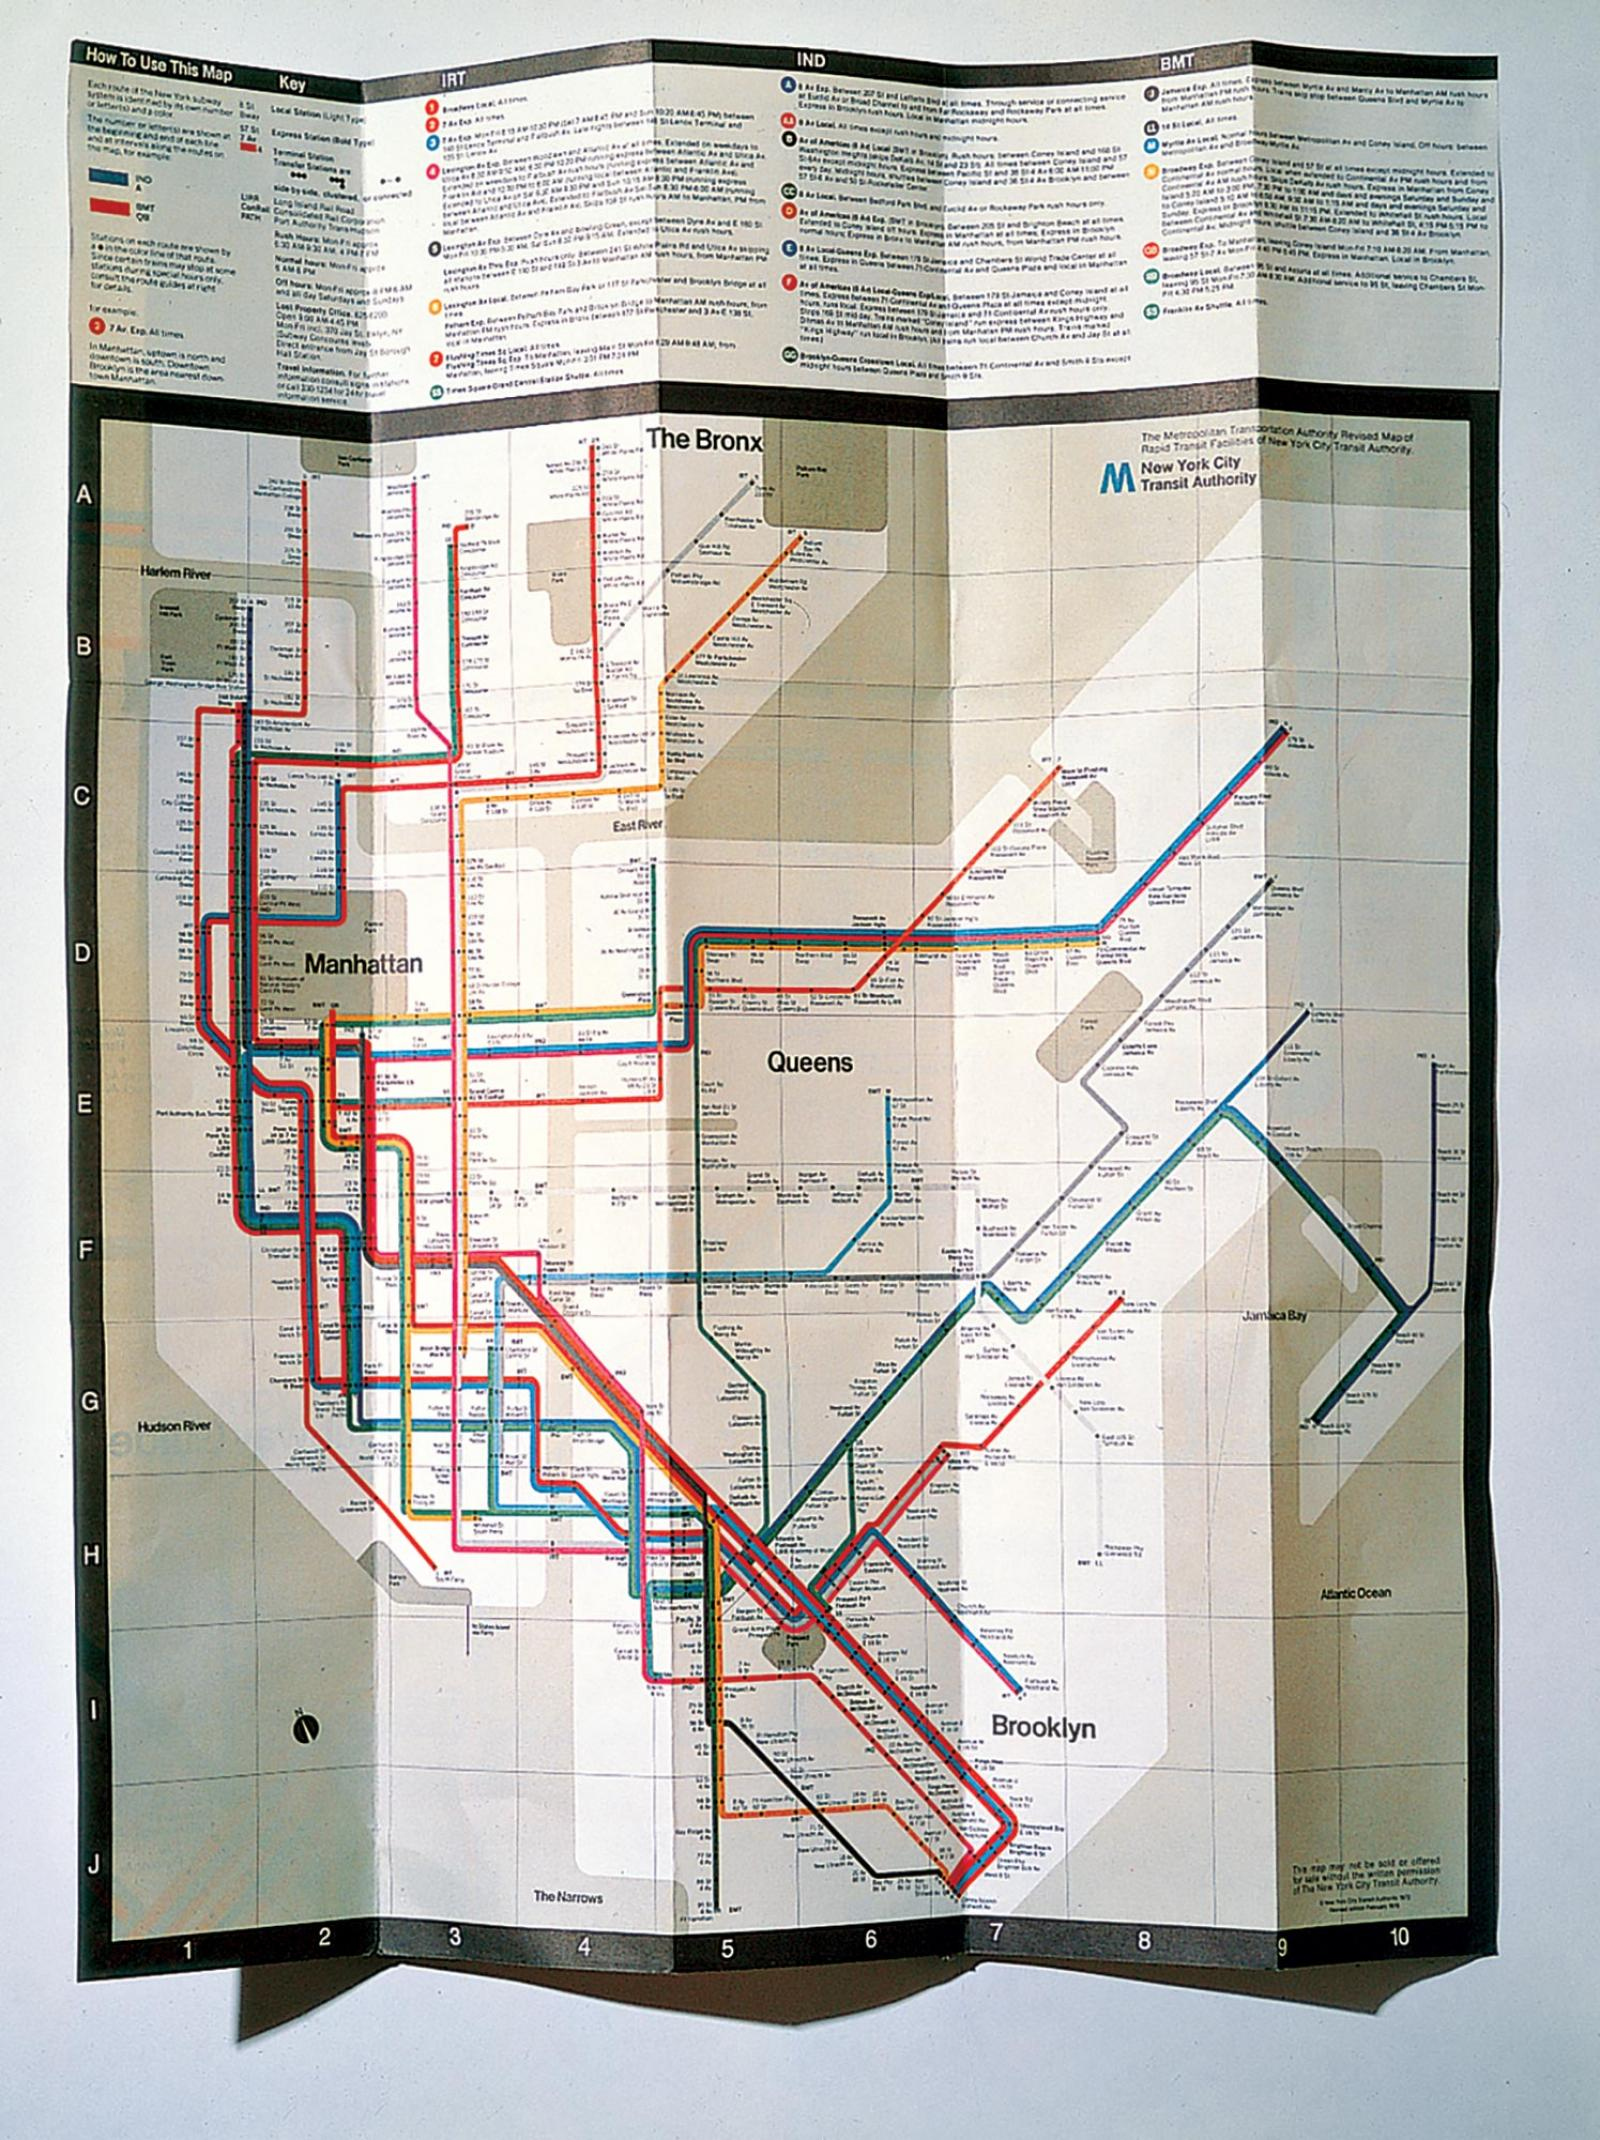 Nyc Subway Map Massimo Vignelli.New York City Transit Authority Subway Map Agi